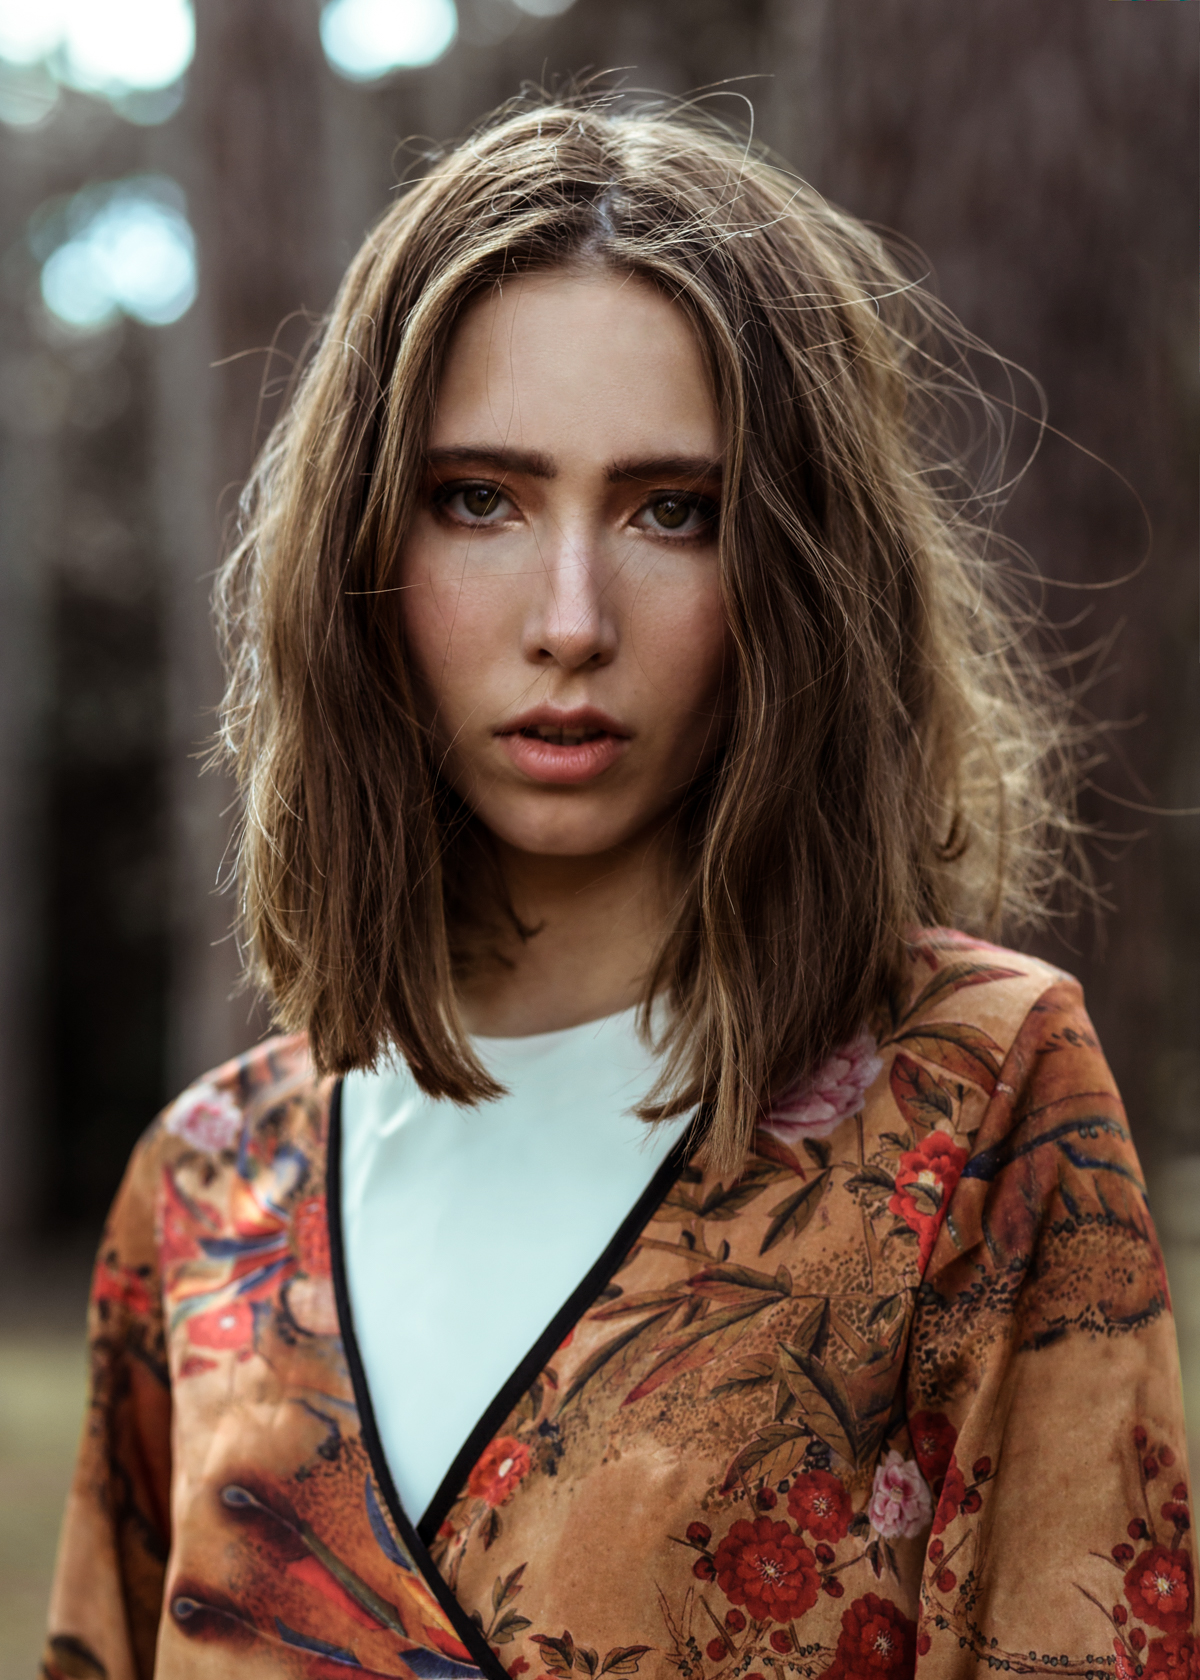 Kat_Terek_London_Bohemian_Editorial_Fashion_Photographer_Lindenstaub_Forest_Lucys_Magazine-9